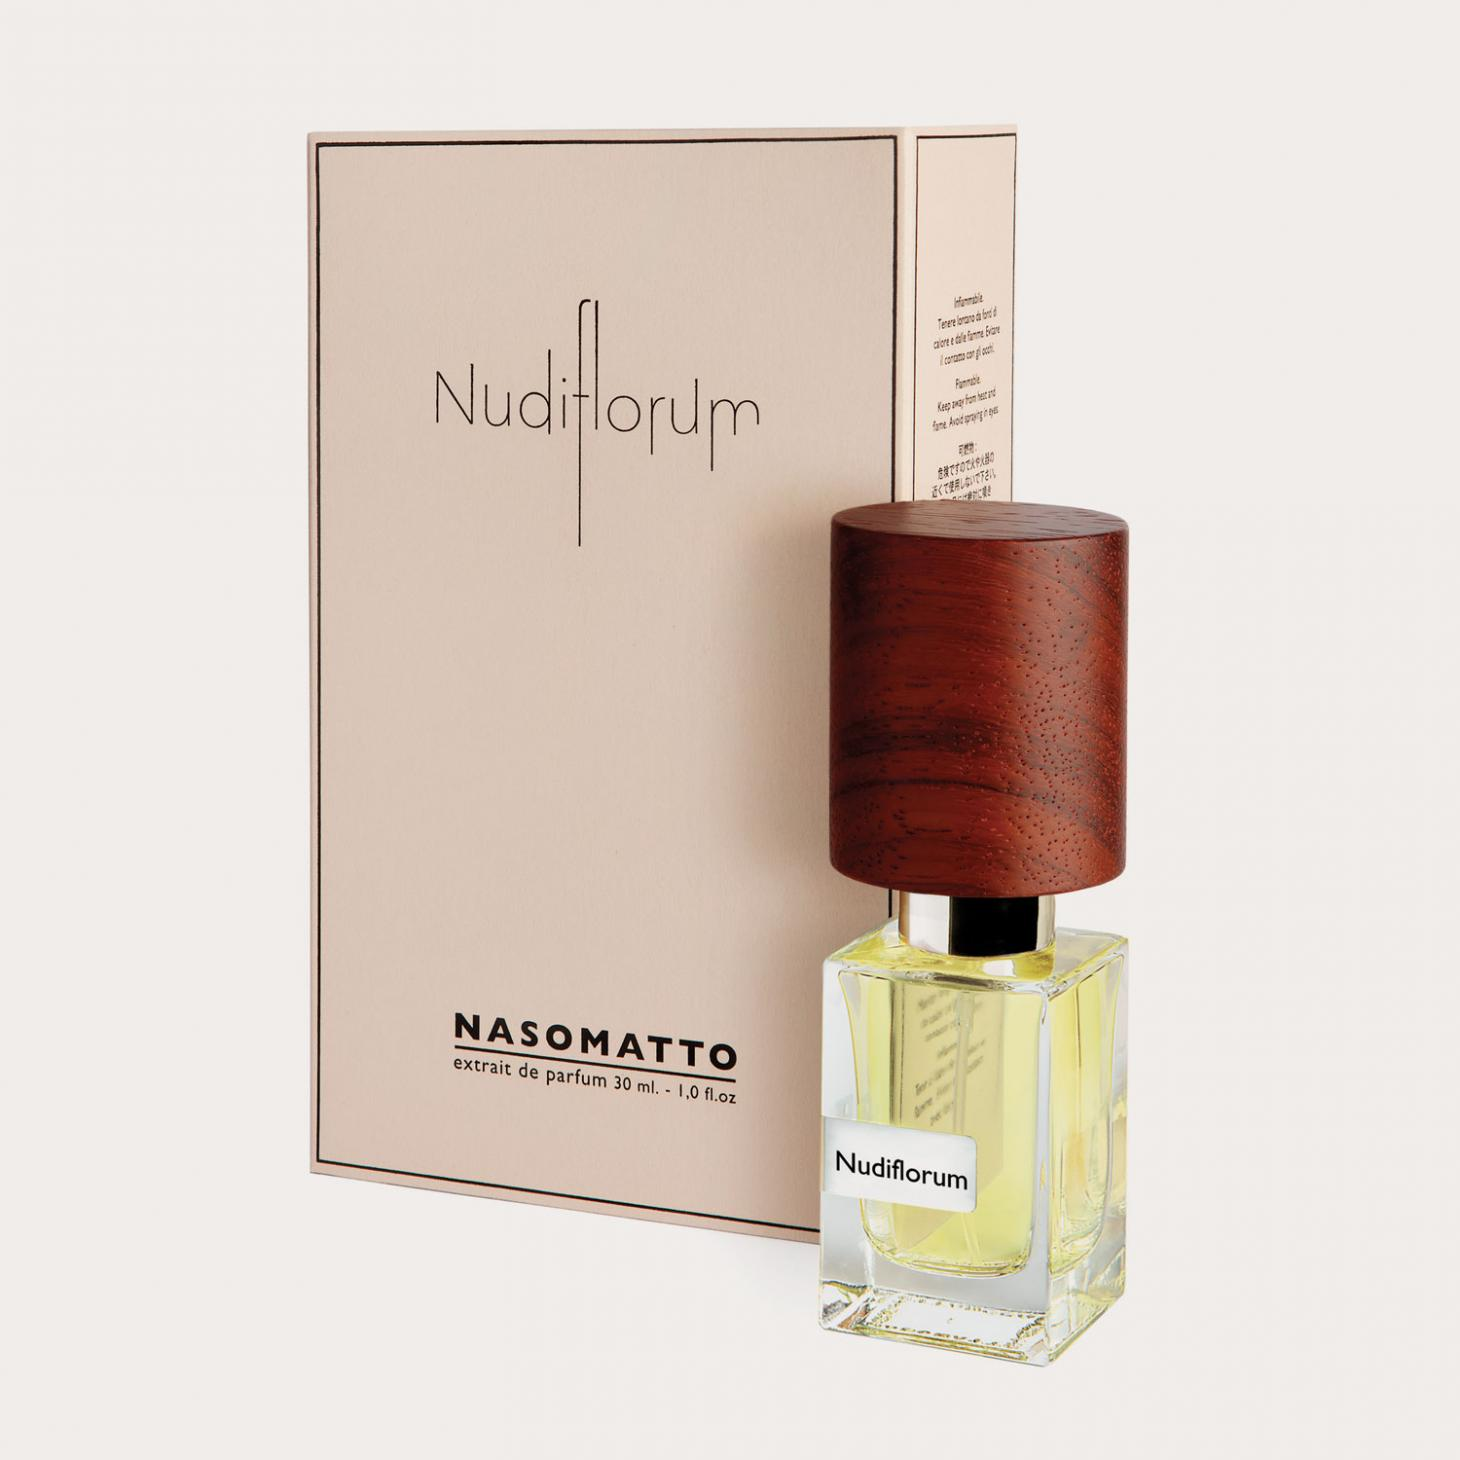 Packaging design of Nudiforum fragrance, by Nasomatto